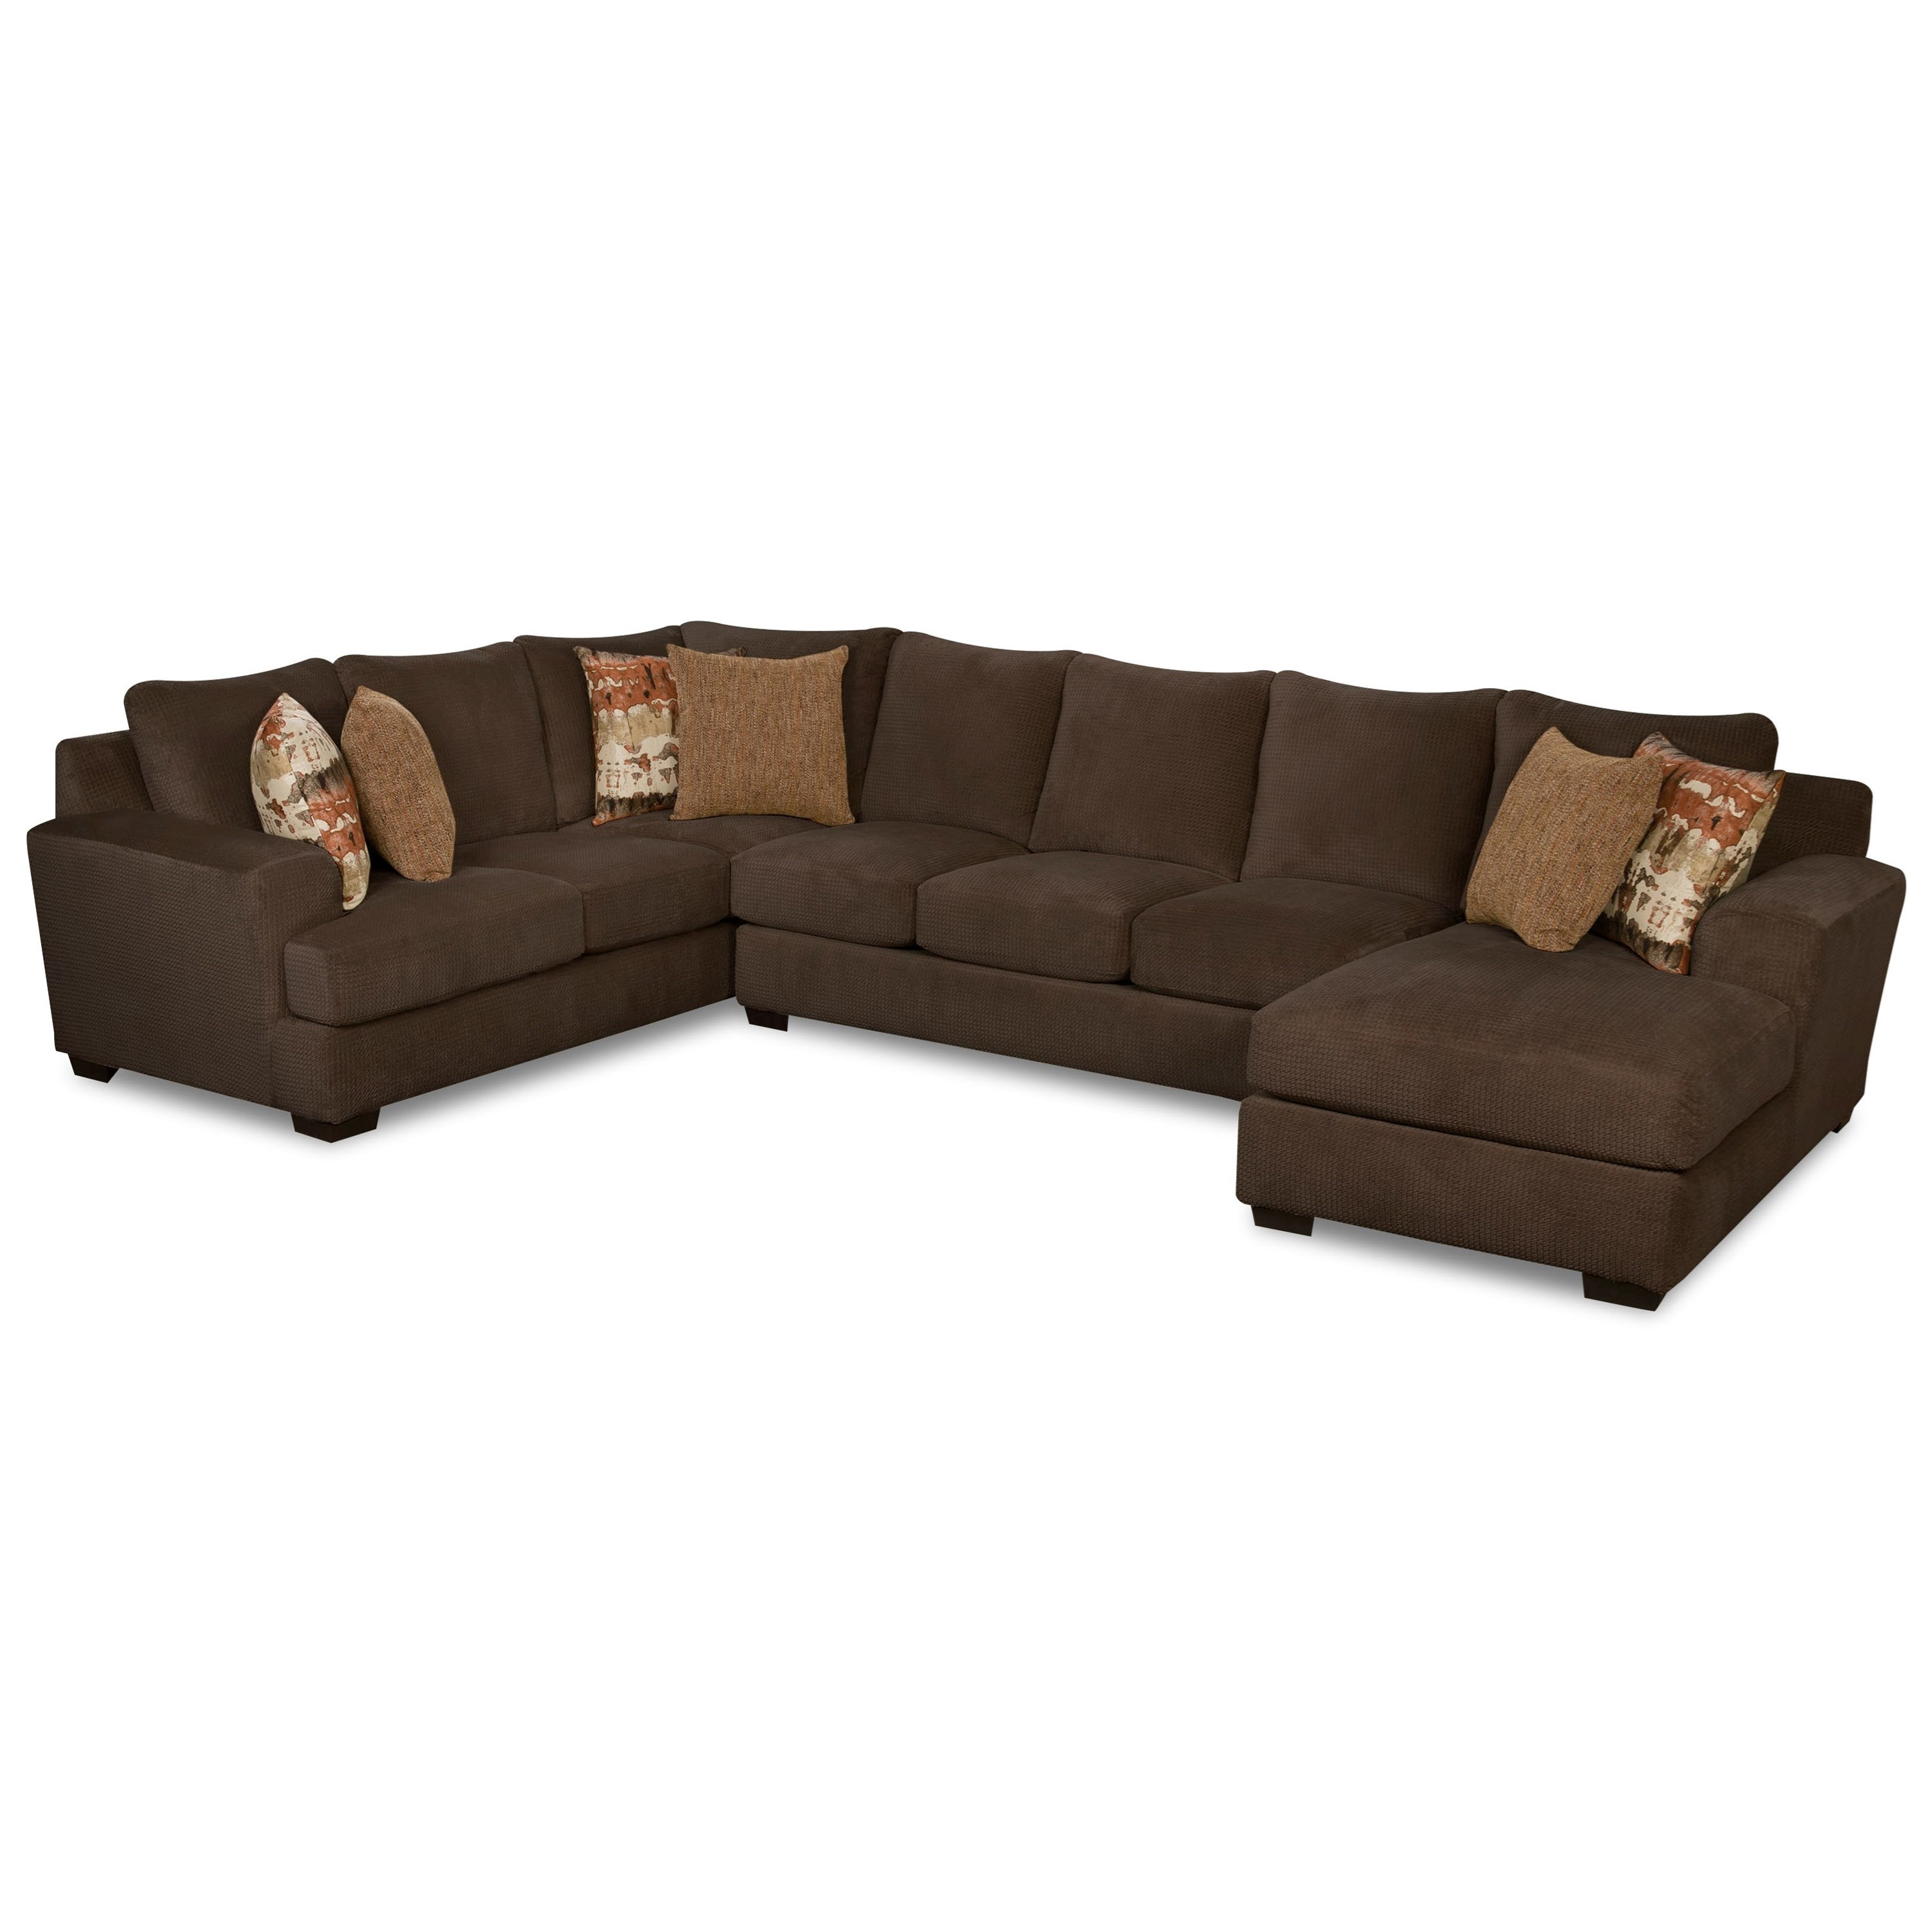 35B0 Sectional with Right Arm Facing Chaise by Corinthian at Story & Lee Furniture